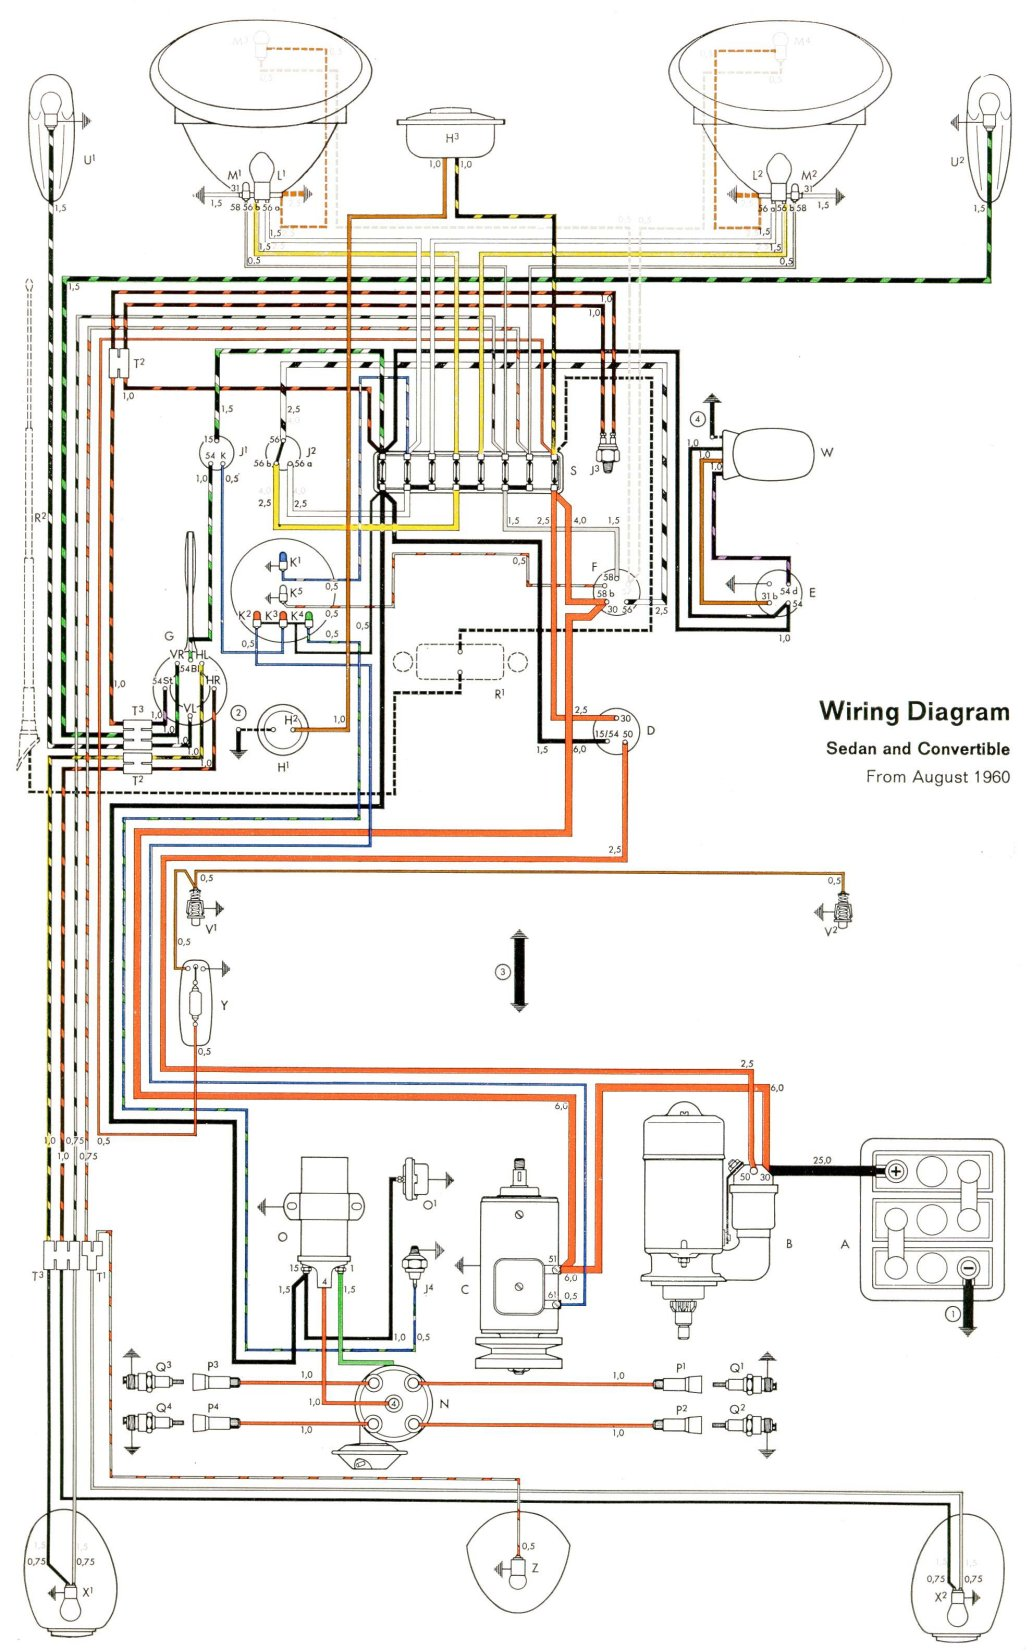 hight resolution of thesamba com type 1 wiring diagrams volkswagen new beetle wiring schematics